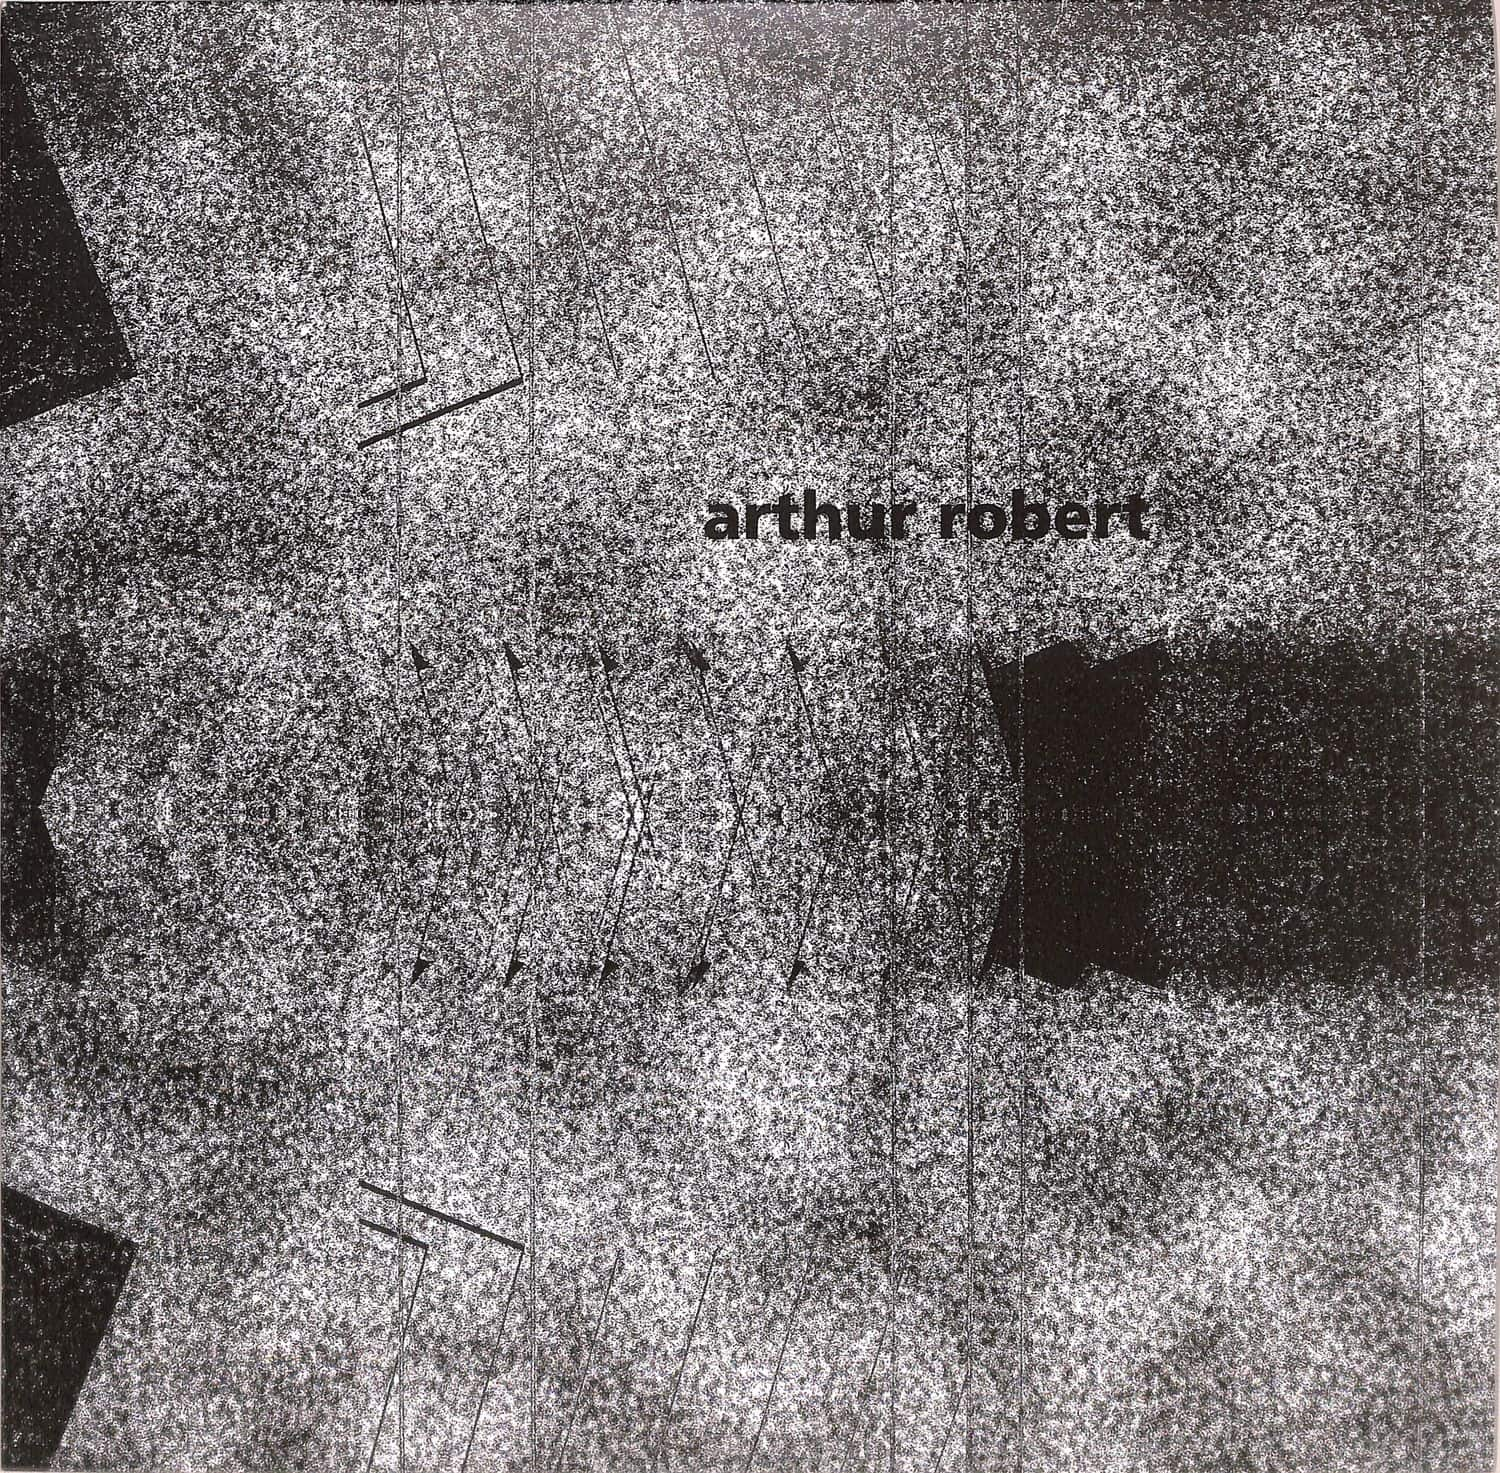 Arthur Robert - TRANSITION PART 1